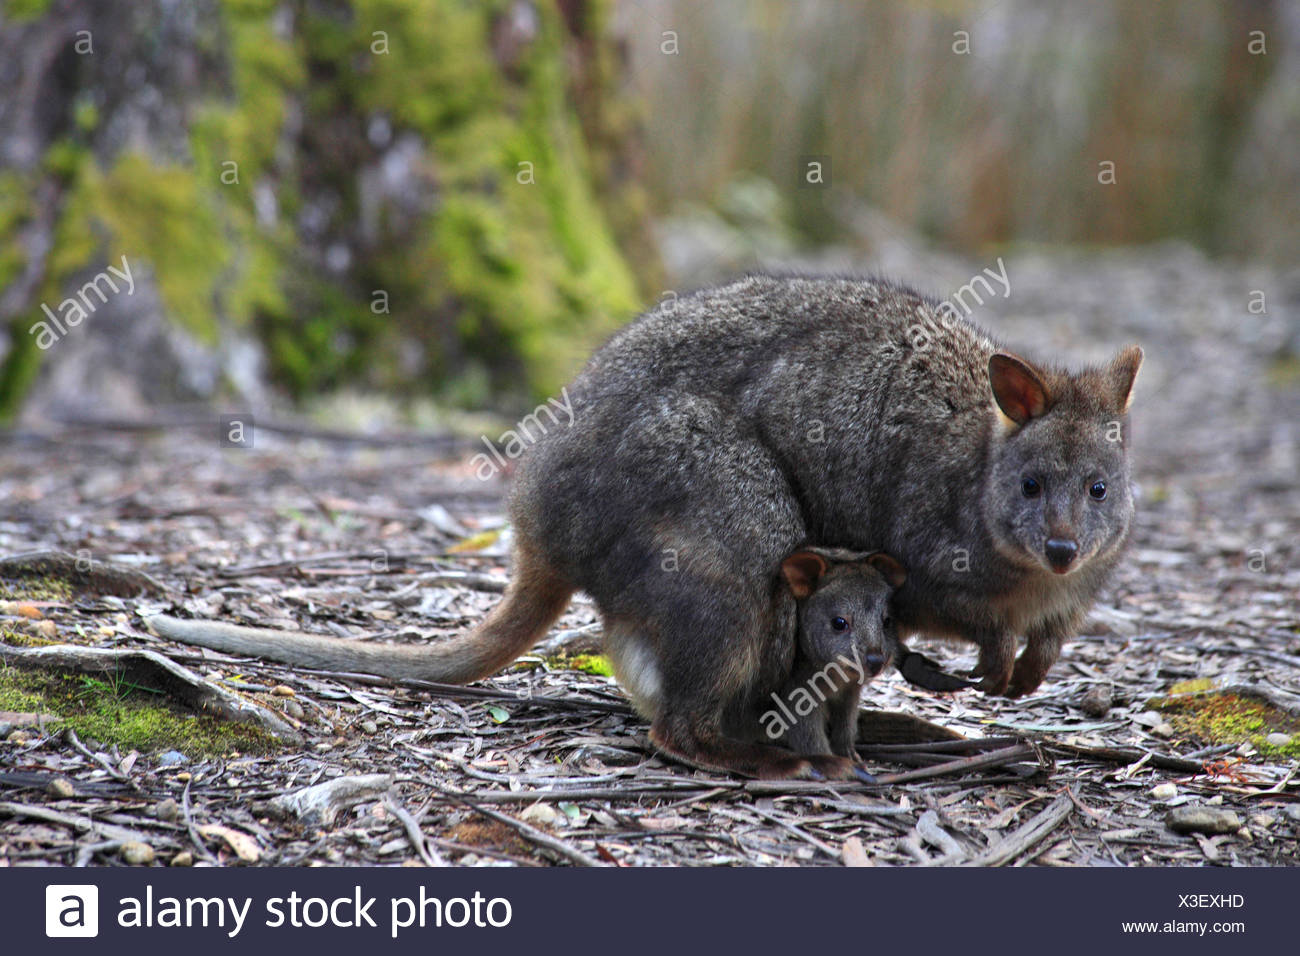 Rufous Wallaby Red Bellied Pademelon Tasmanian Pademelon Thylogale Billardierii Female With Pup In Pouch Australia Tasmania Stock Photo Alamy